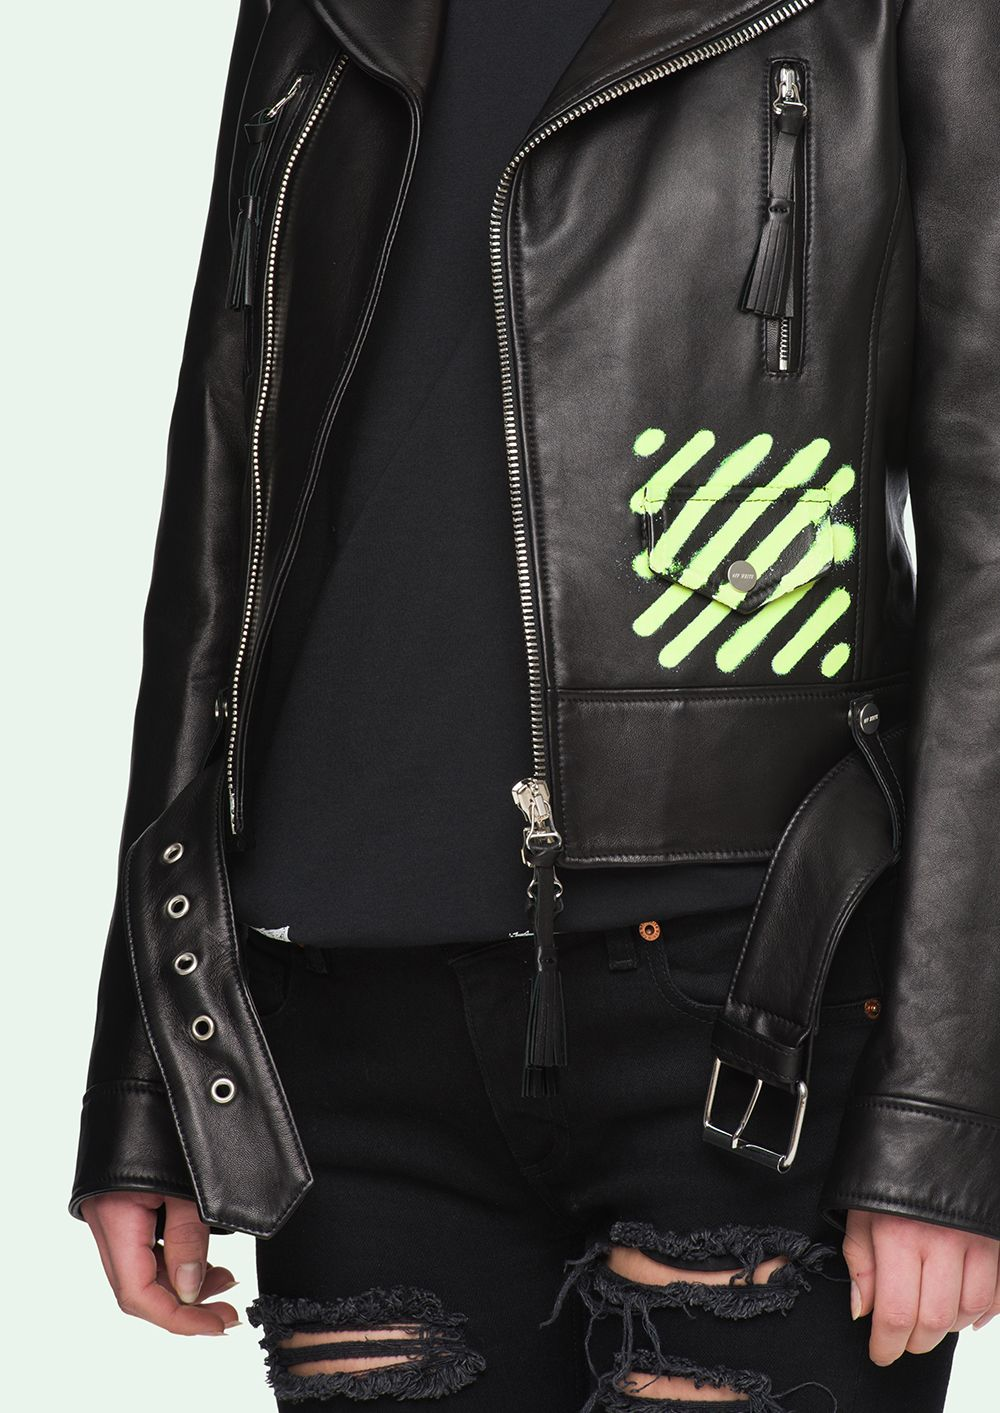 SPRAY PAINT LEATHER JACKET Custom leather jackets